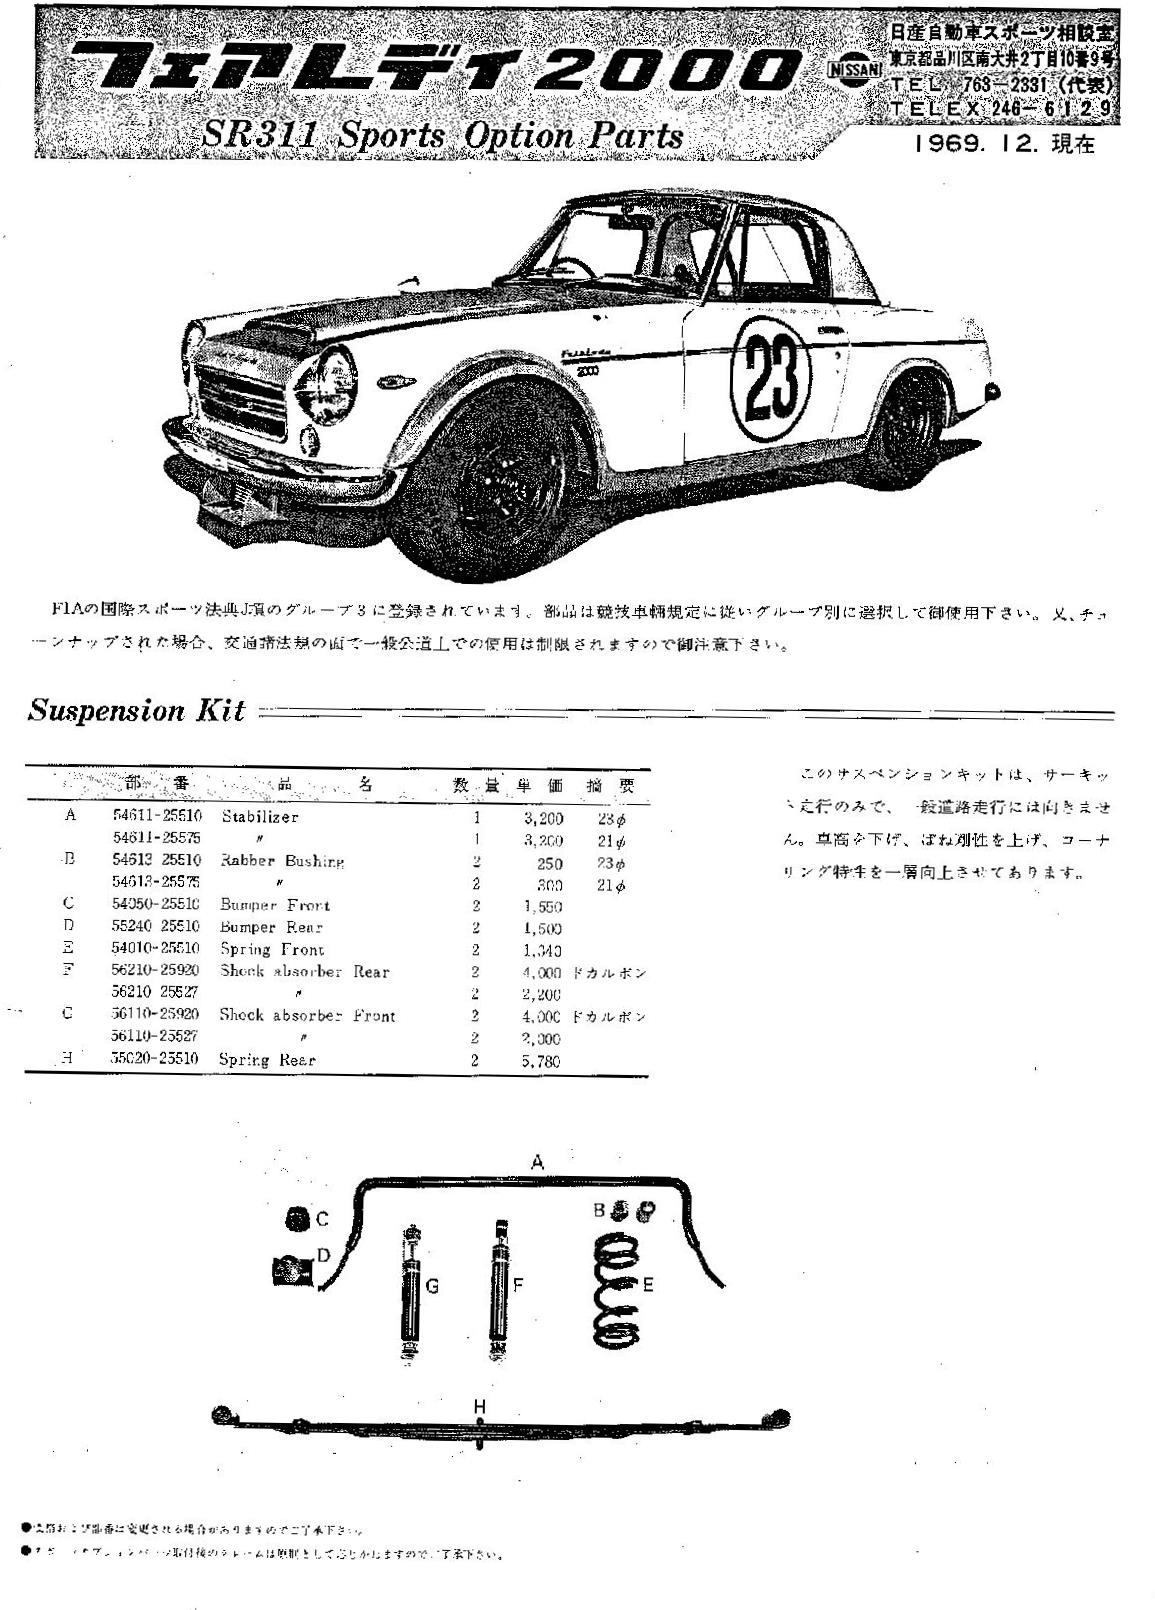 Sr311 Fairlady Roadster Racing Parts Catalog From